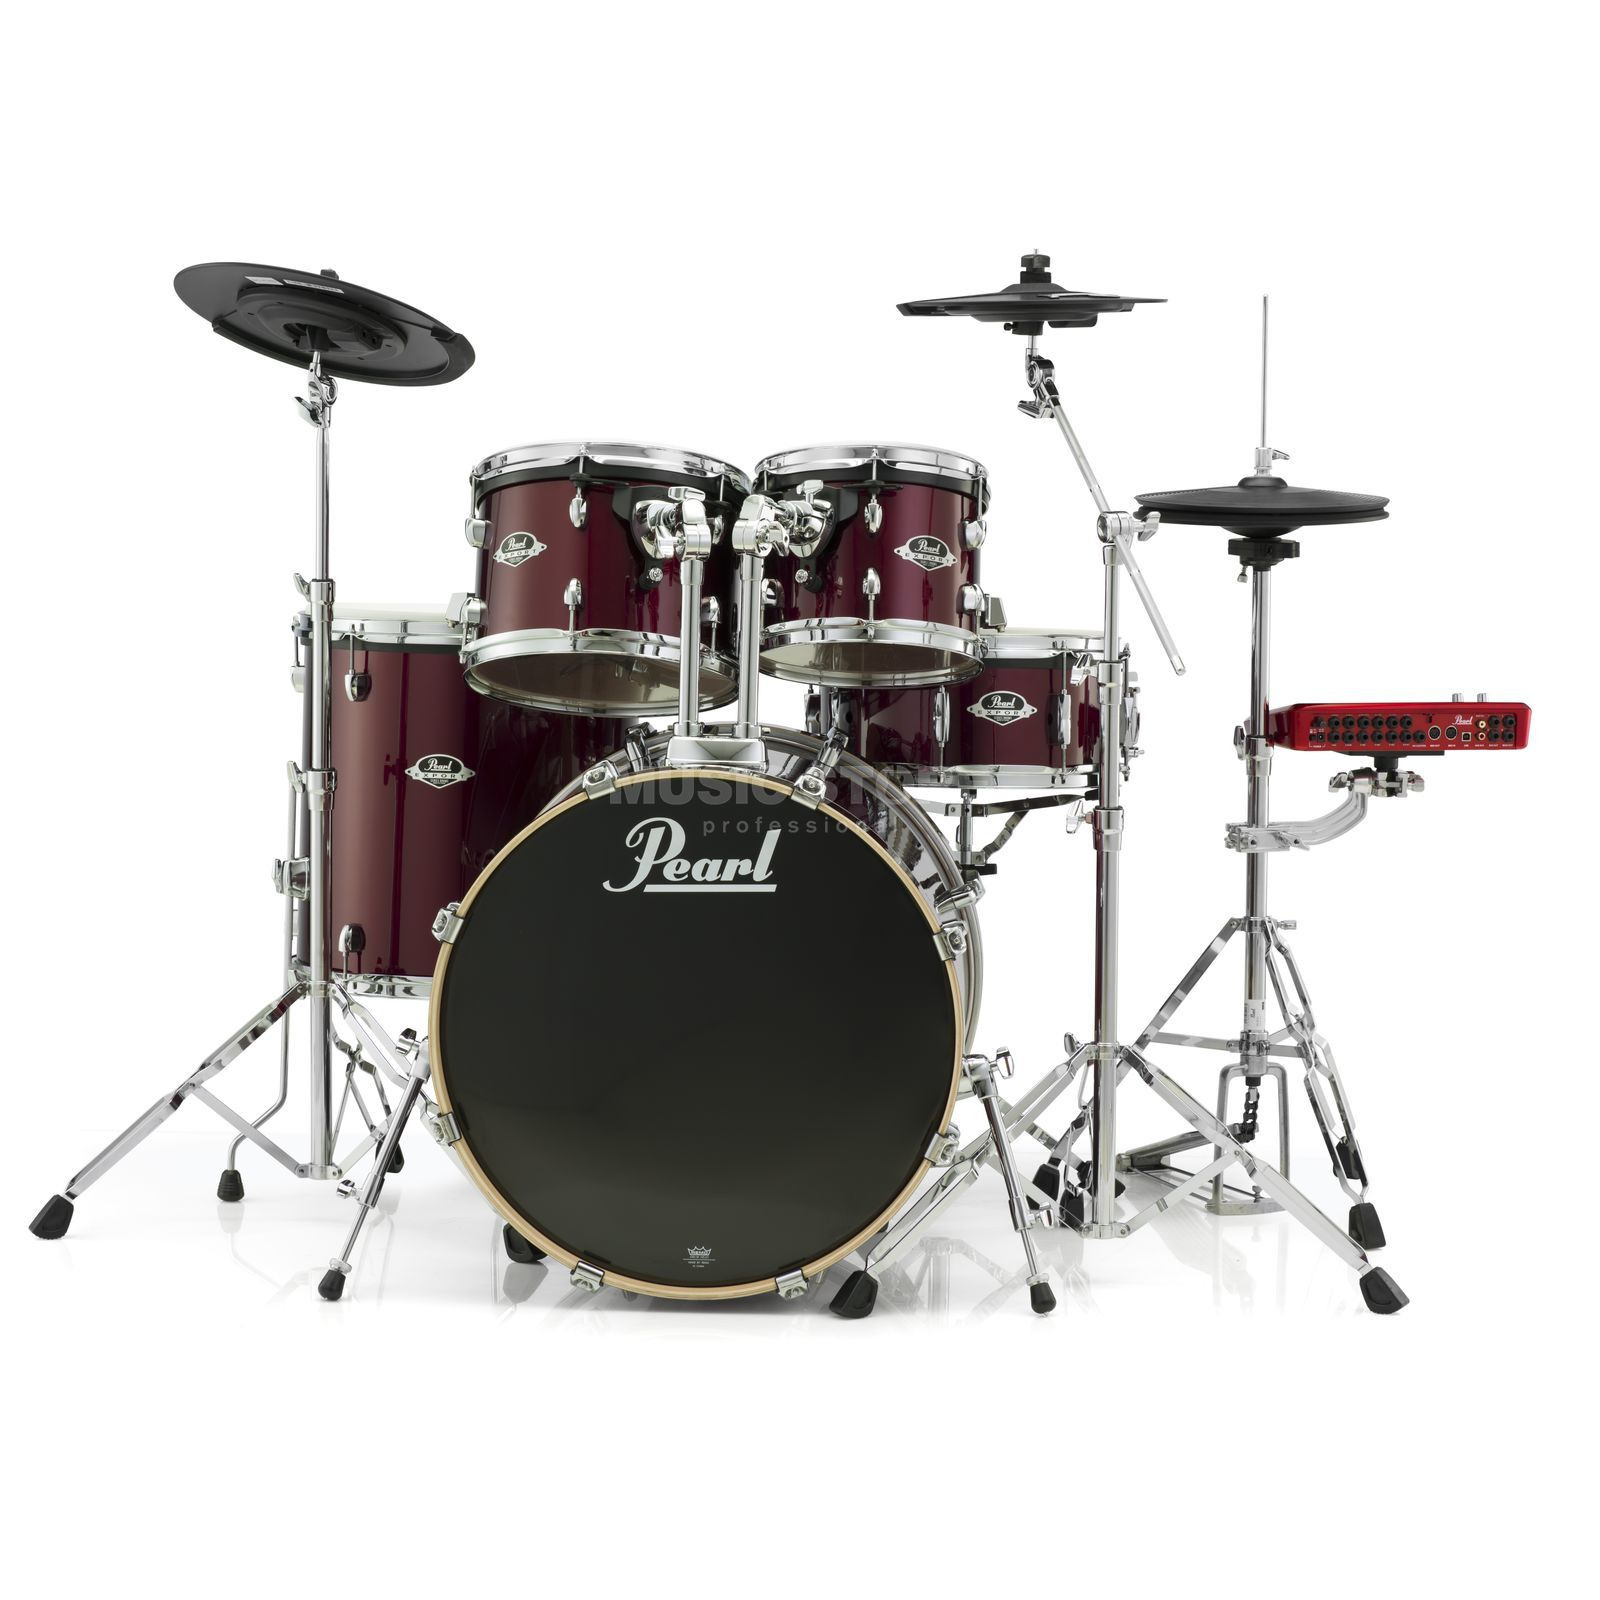 Pearl ePro Live E-DrumSet EPEXX725S/C, Red Wine Produktbild